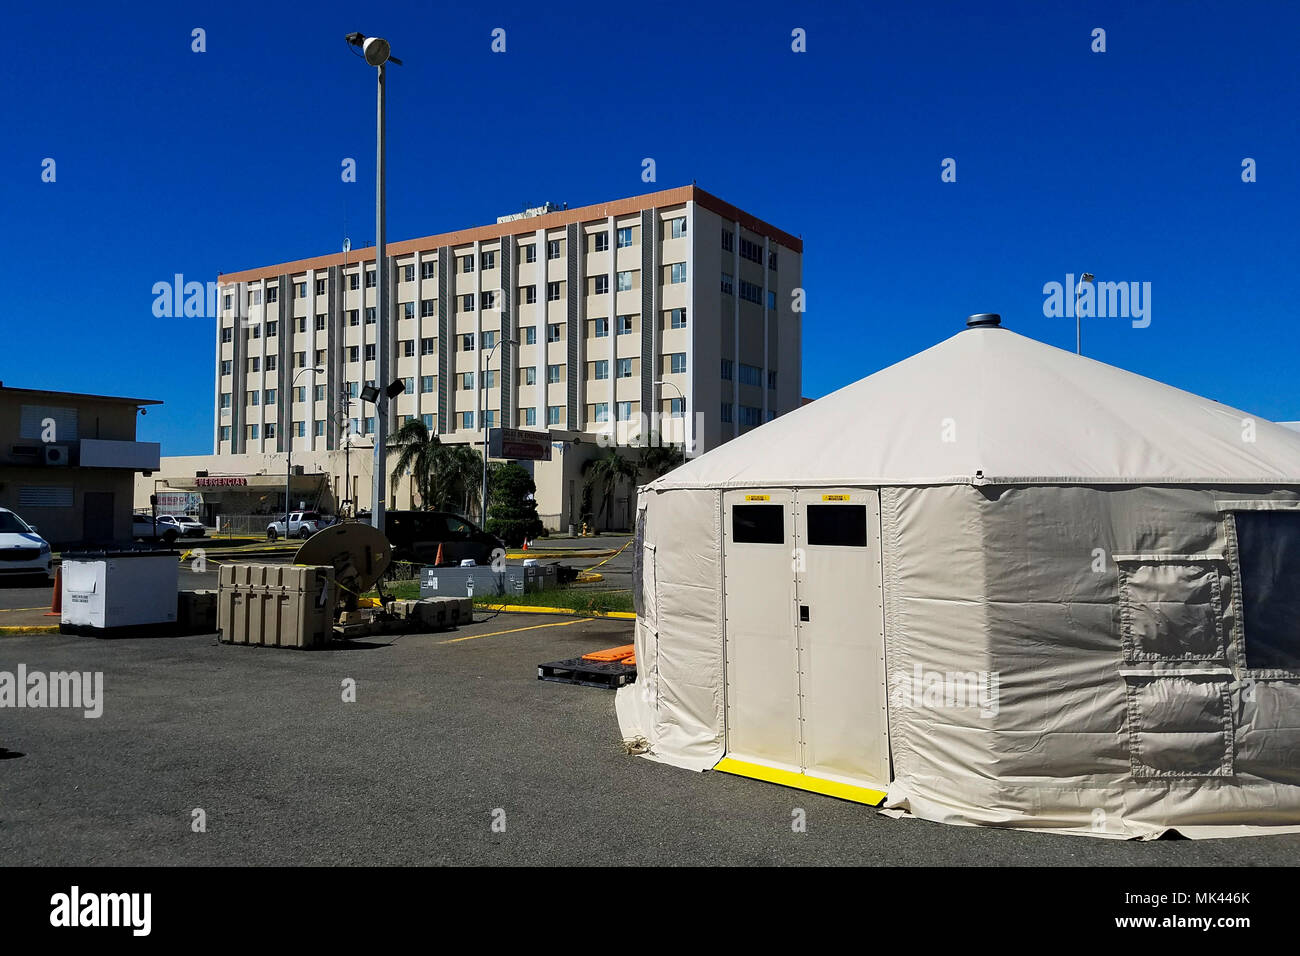 AGUADILLA, Puerto Rico – A tent from the department of Health and Human Services is set up in front of the Buen Samaritano Hospital Nov. 3, 2017. HHS, Air Force and Army medical providers have offered basic to acute care to residents throughout the region since Hurricane Maria rendered the hospital inoperable. (U.S. Army photo by Capt. J. Scott Detweiler) - Stock Image